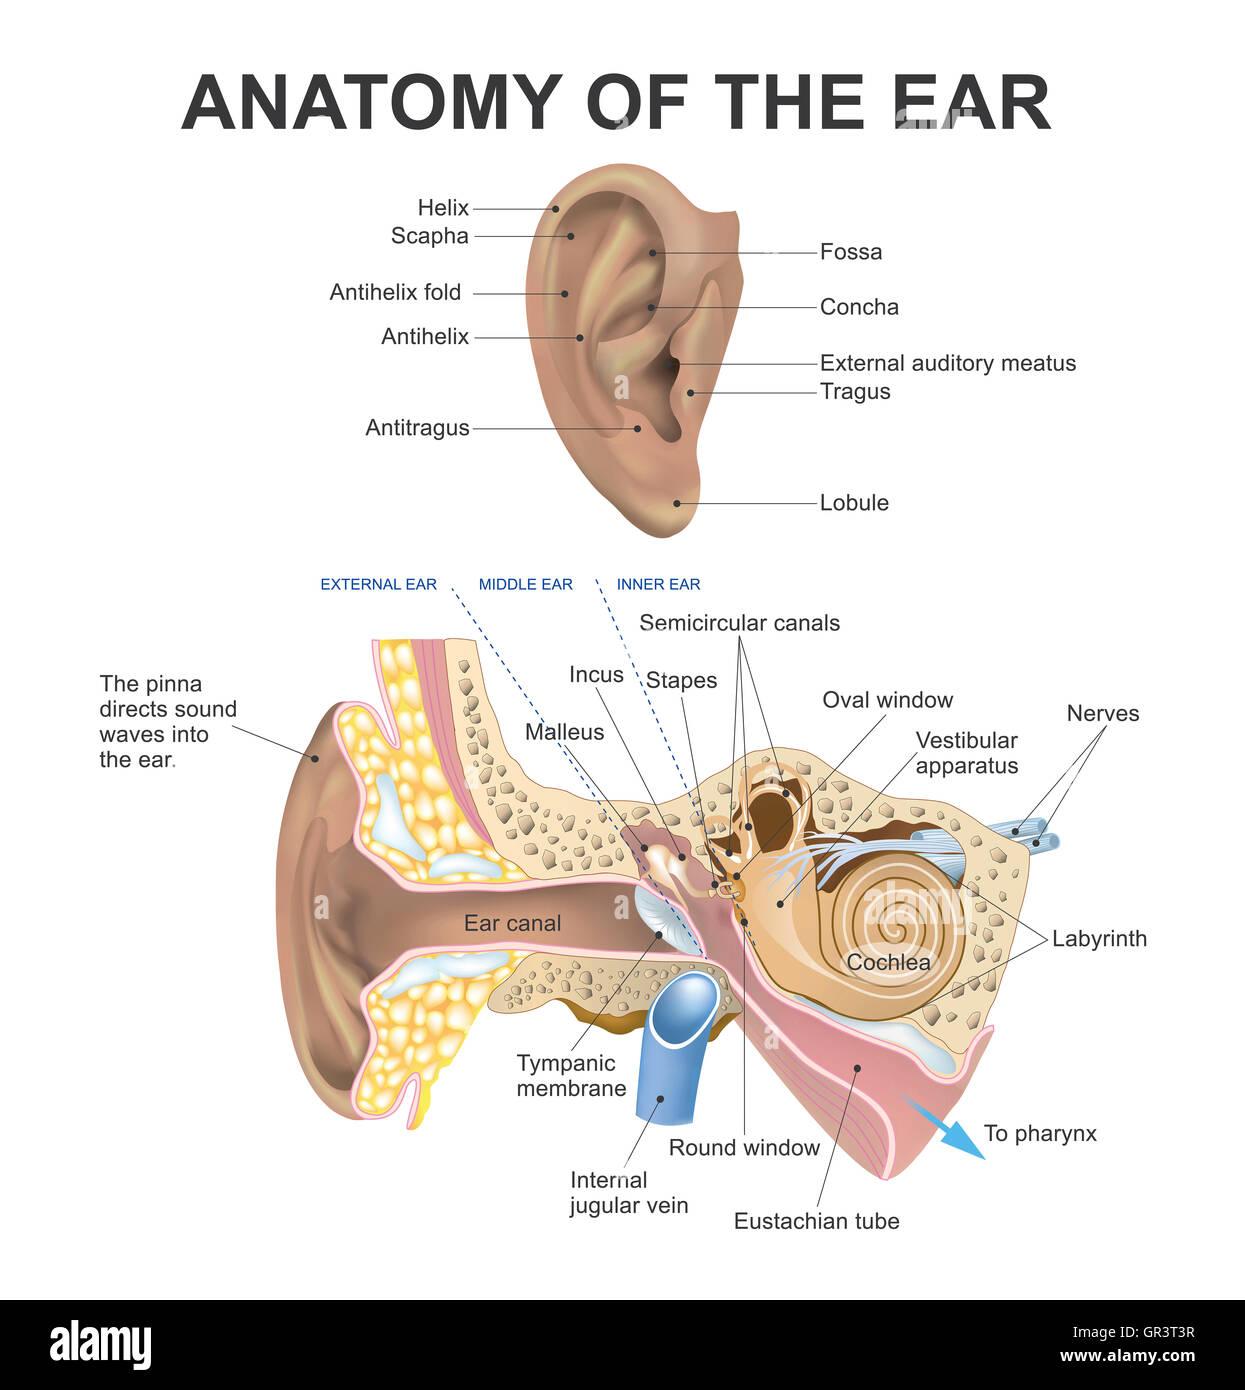 Parts Of The Ear >> The Human Ear Consists Of Three Parts The Outer Ear Middle Ear And